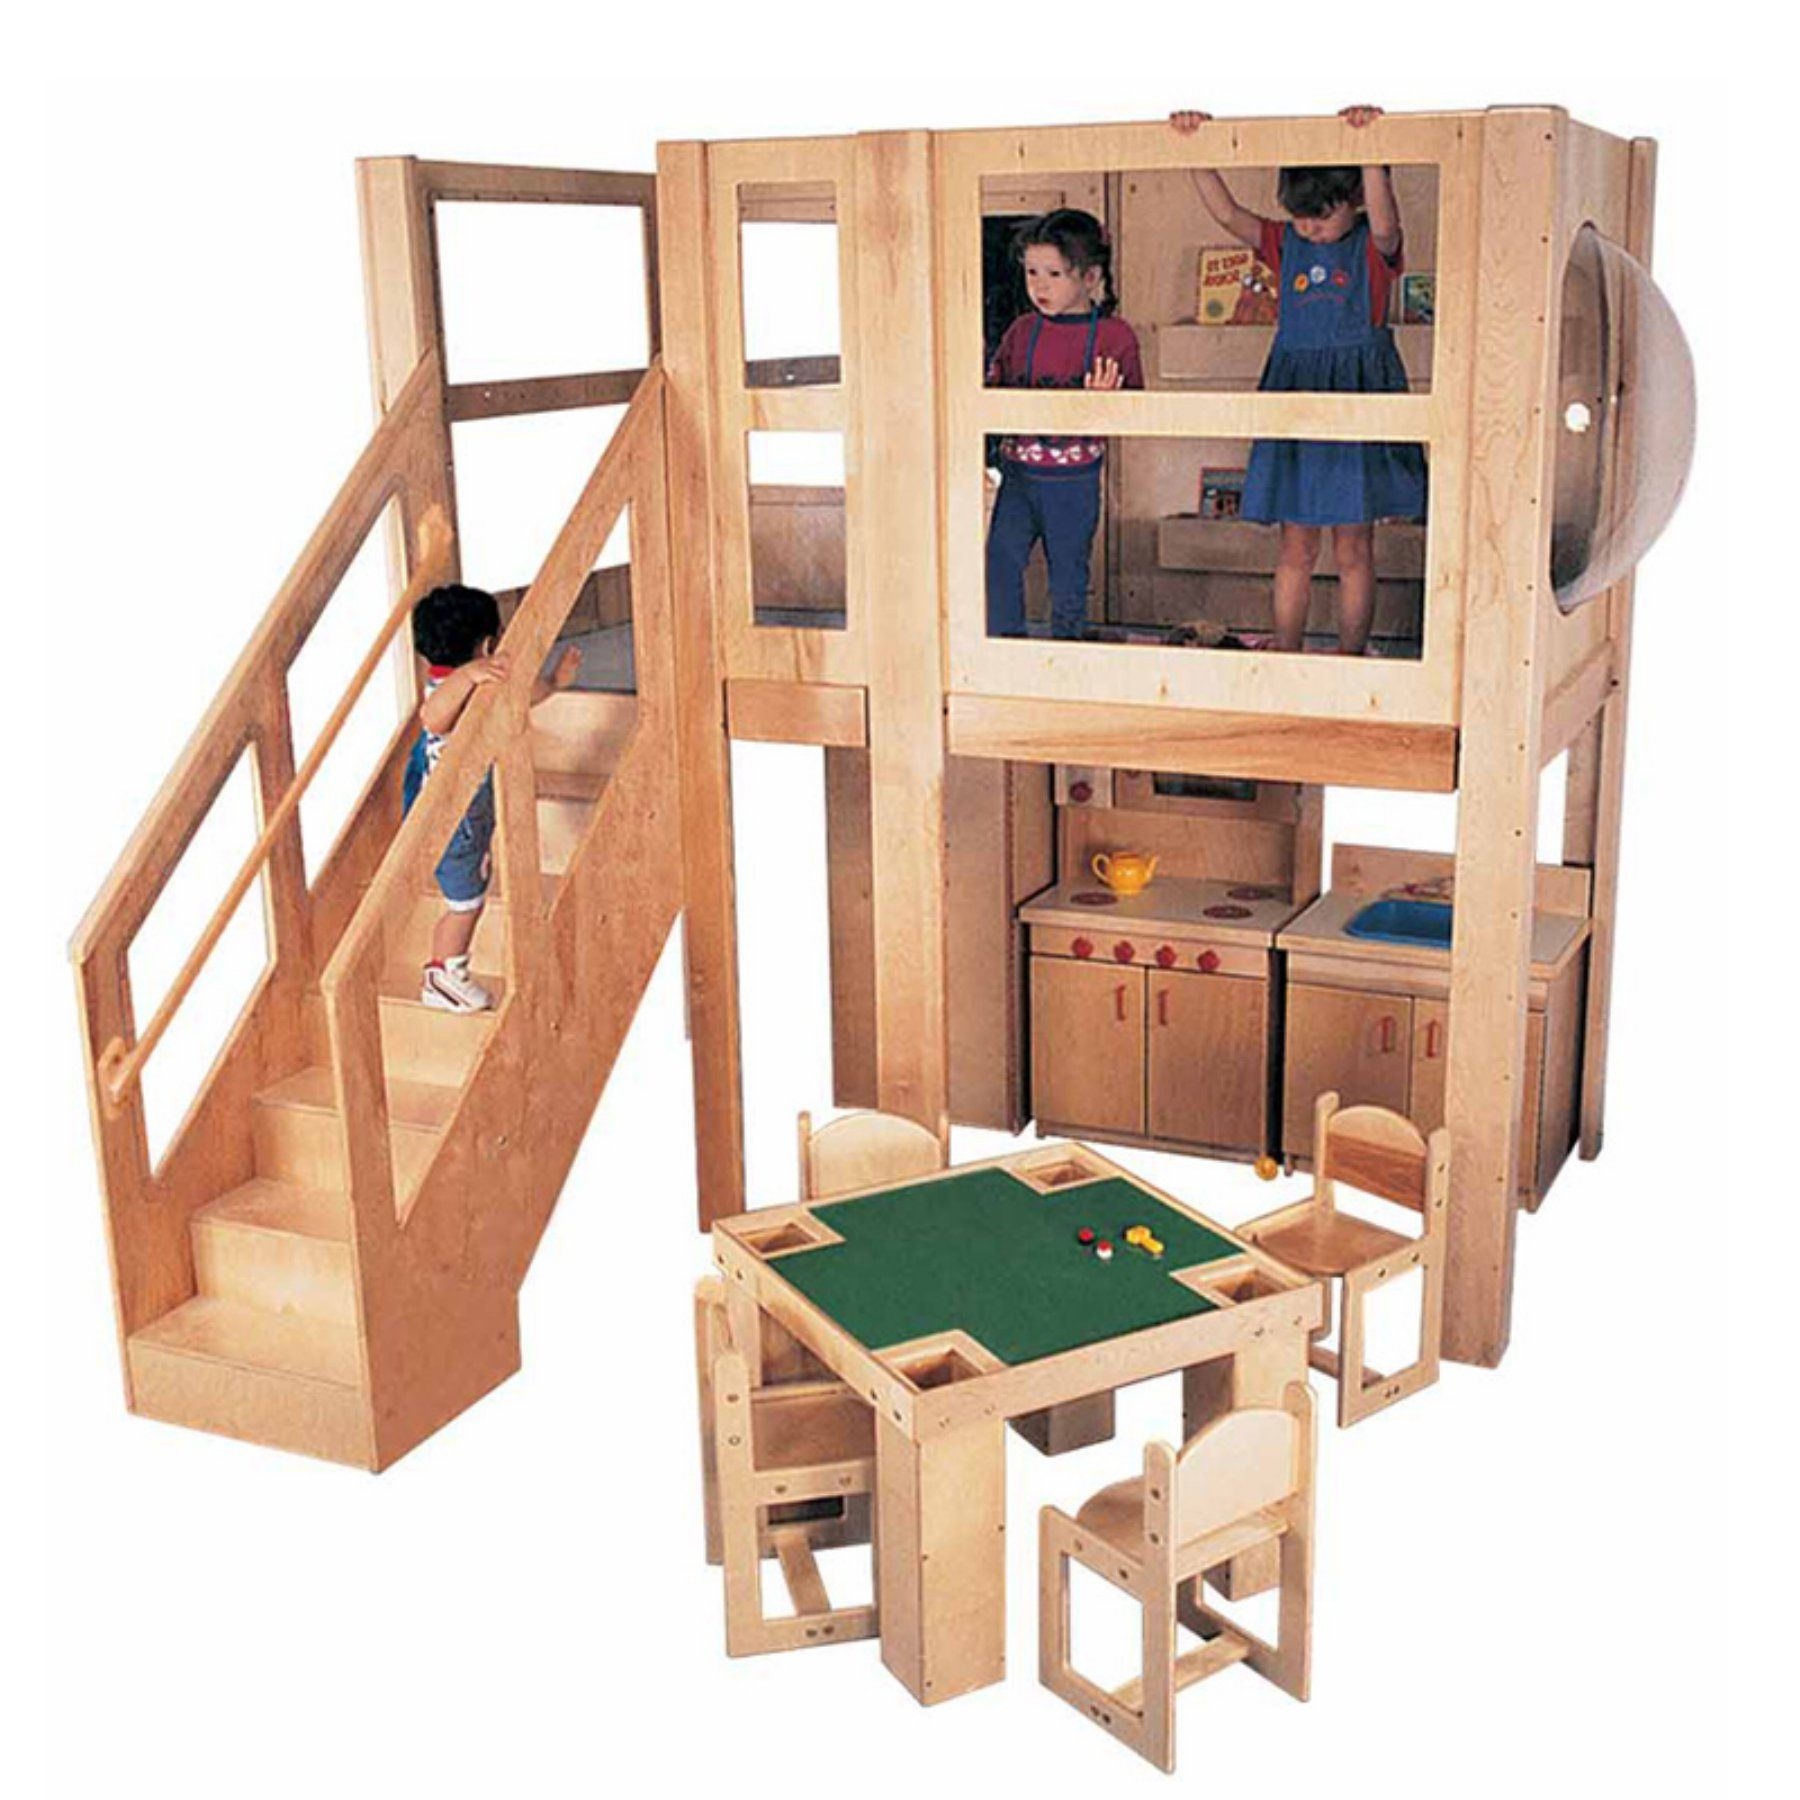 Strictly For Kids Preferred Mainstream Explorer 5 Loft With Steps On Left Sf5046pl